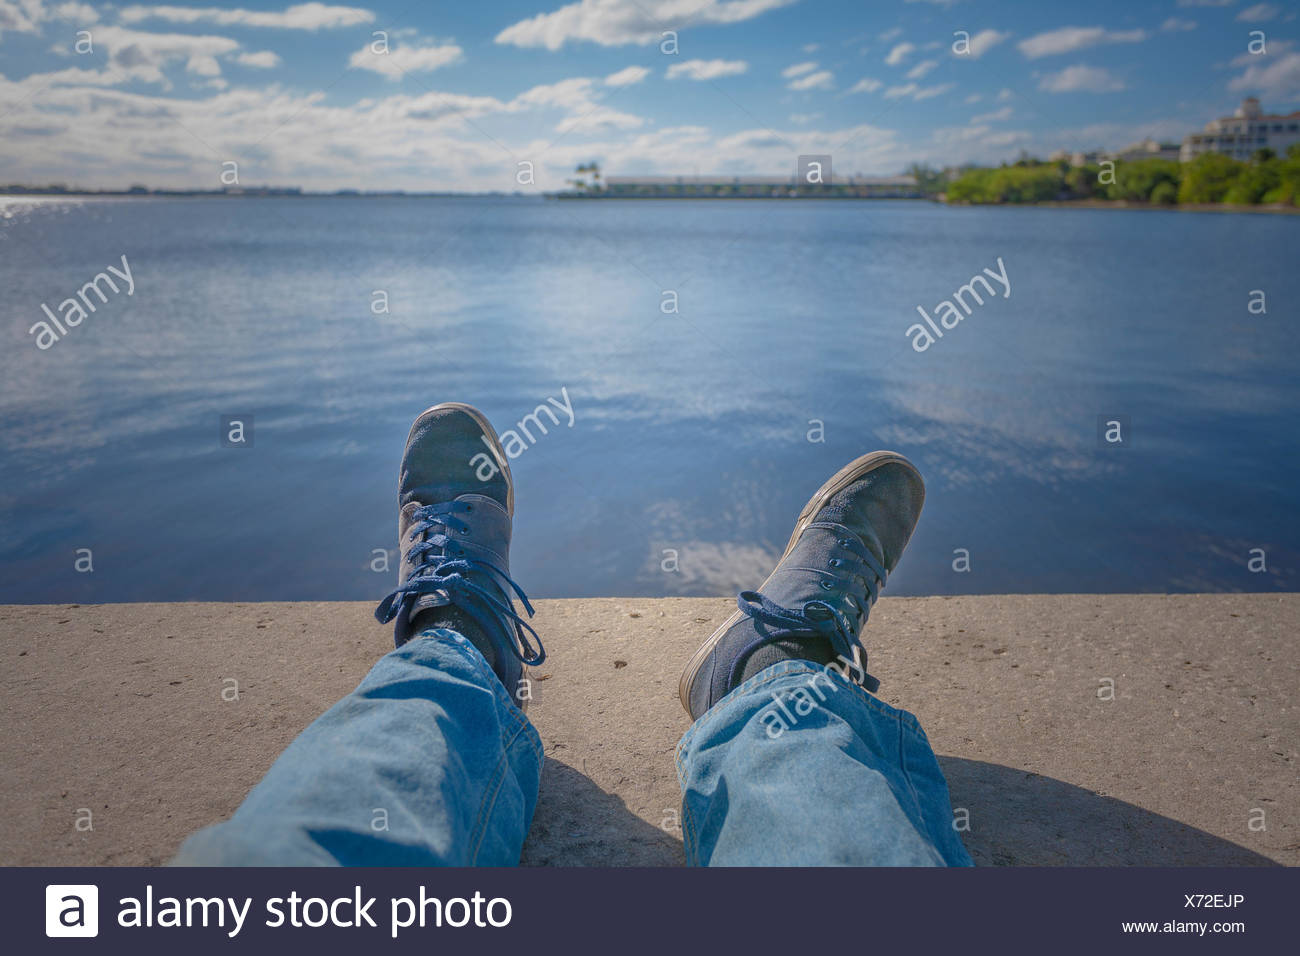 Man's feet and legs near a body of water. - Stock Image